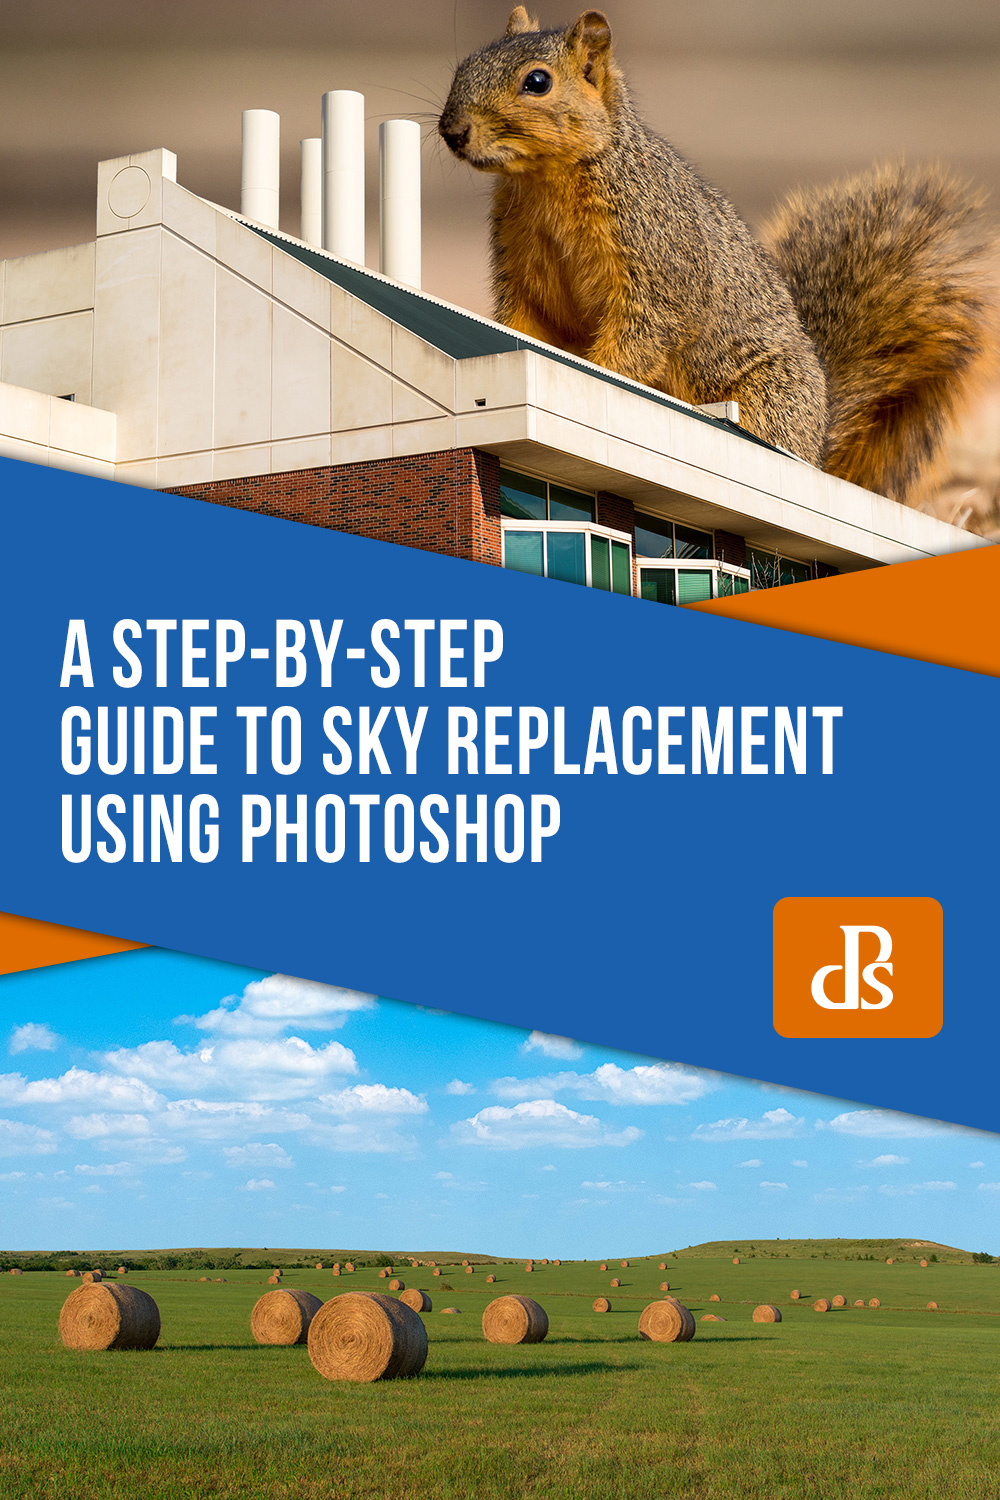 sky-replacement-using-photoshop